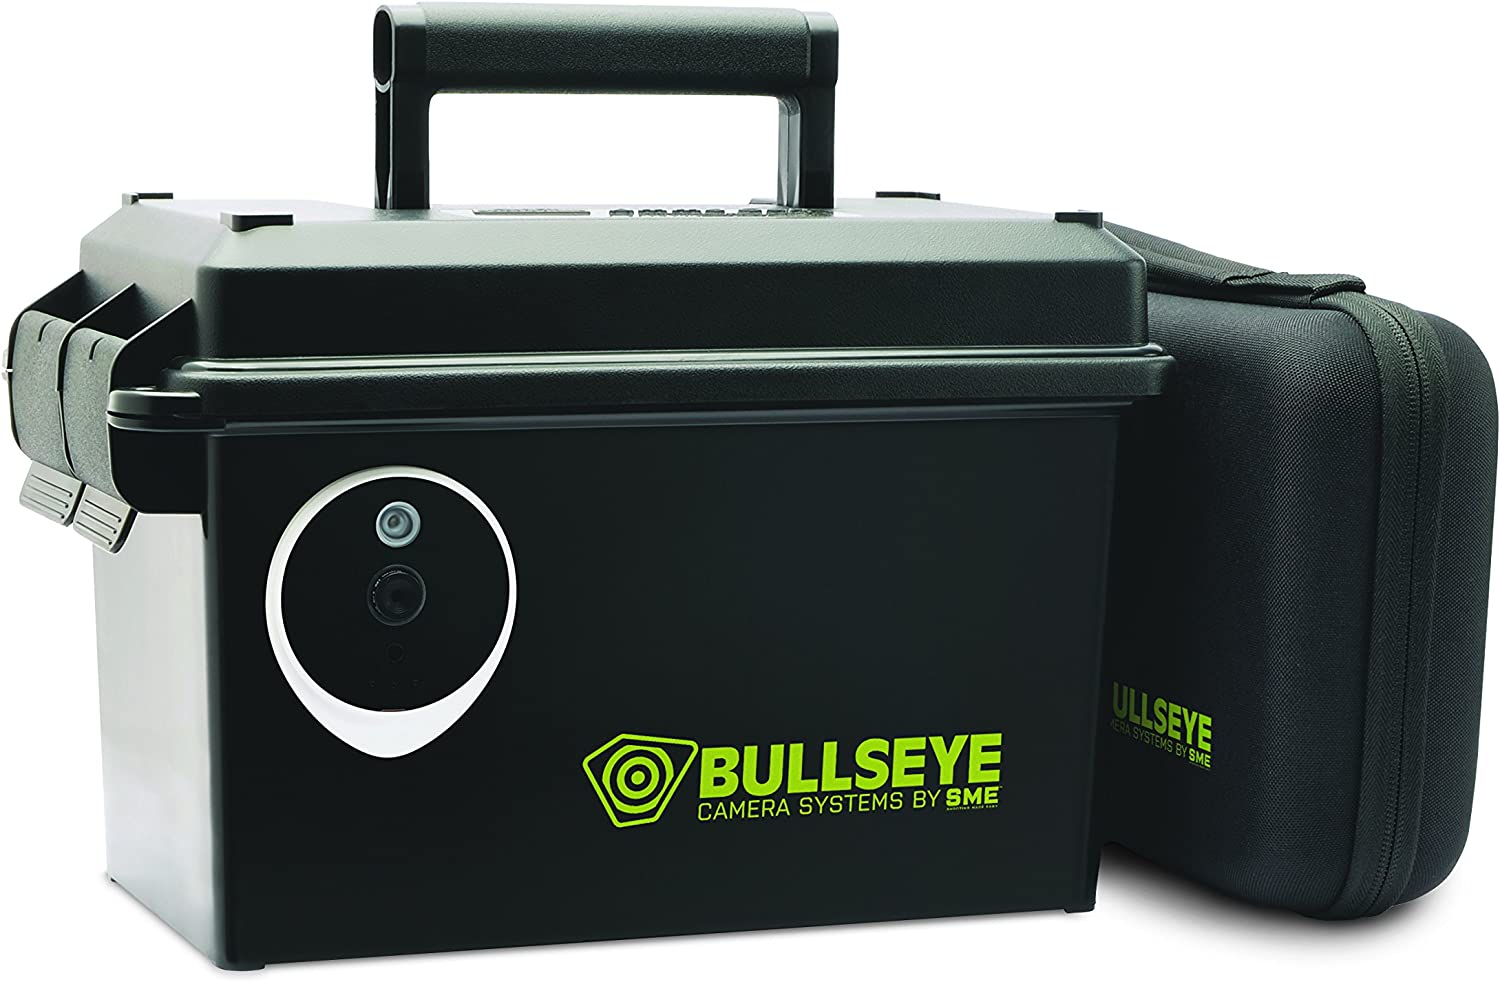 SME Bullseye - WiFi Shooting Target Camera Systems